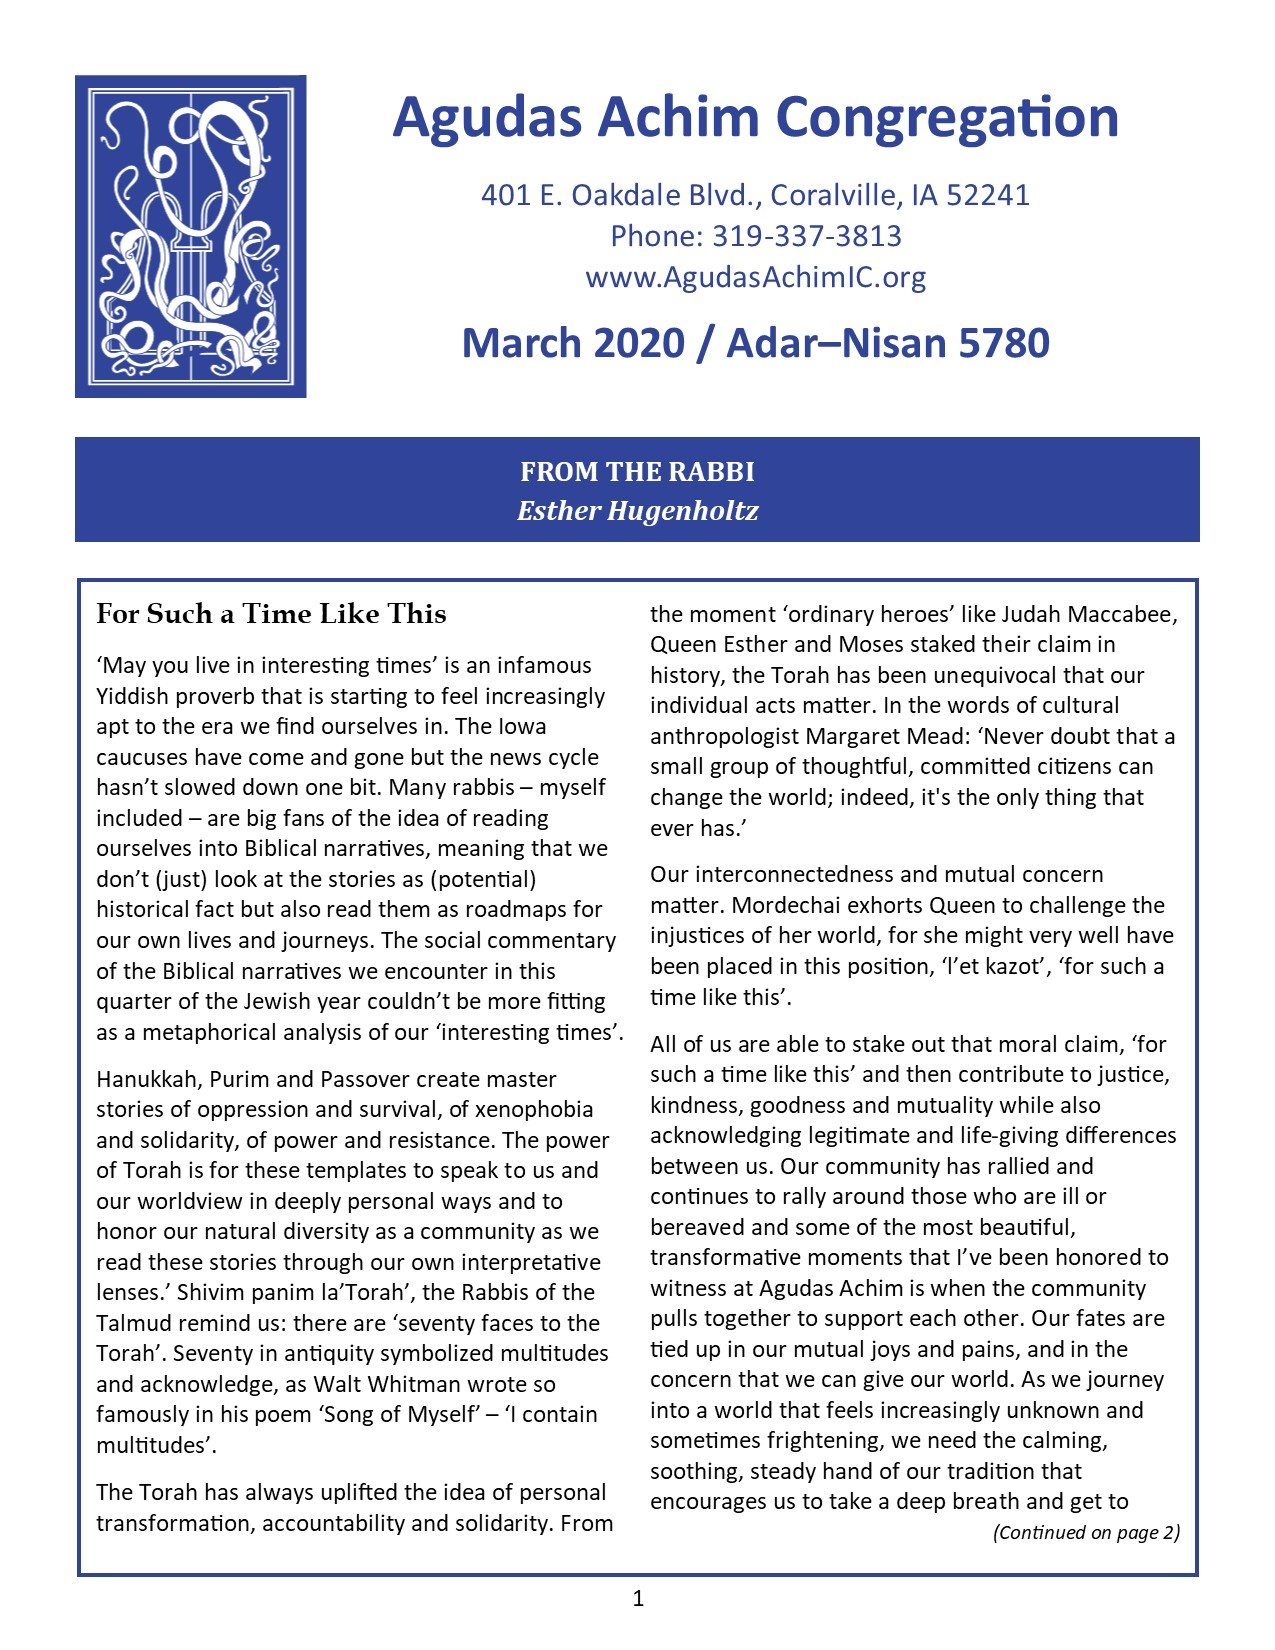 March 2020 Bulletin Cover